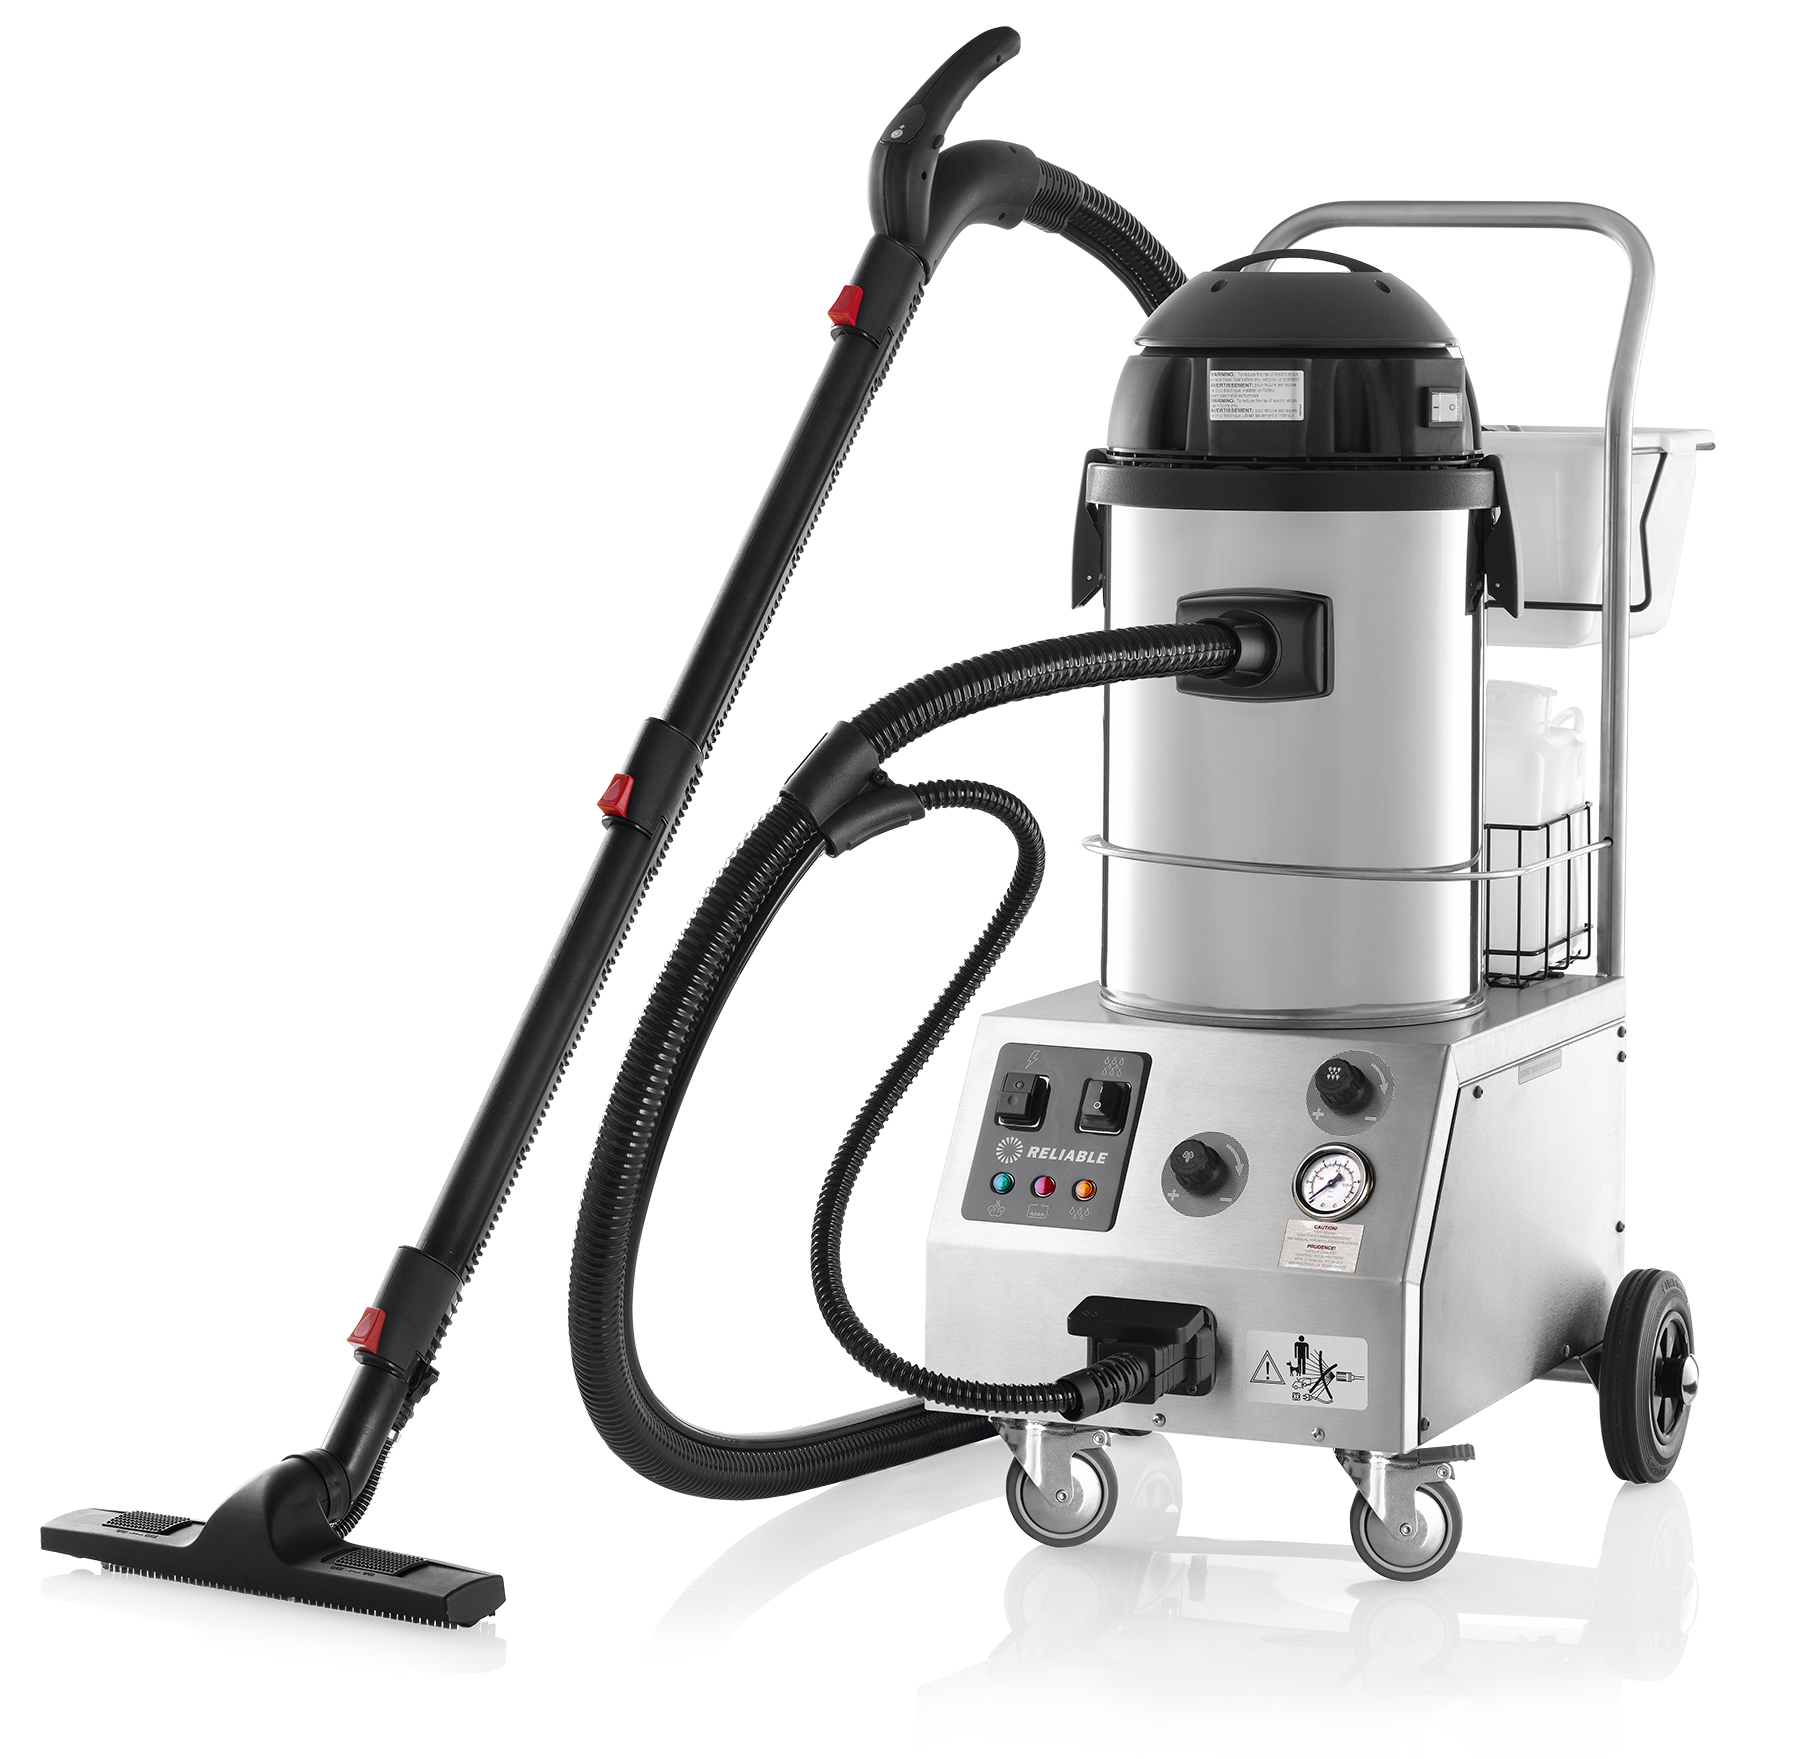 Reliable Tandem Pro Commercial Steam Cleaner with Wet/Dry Vacuum - Made in Italy, Chrome, 2000CV